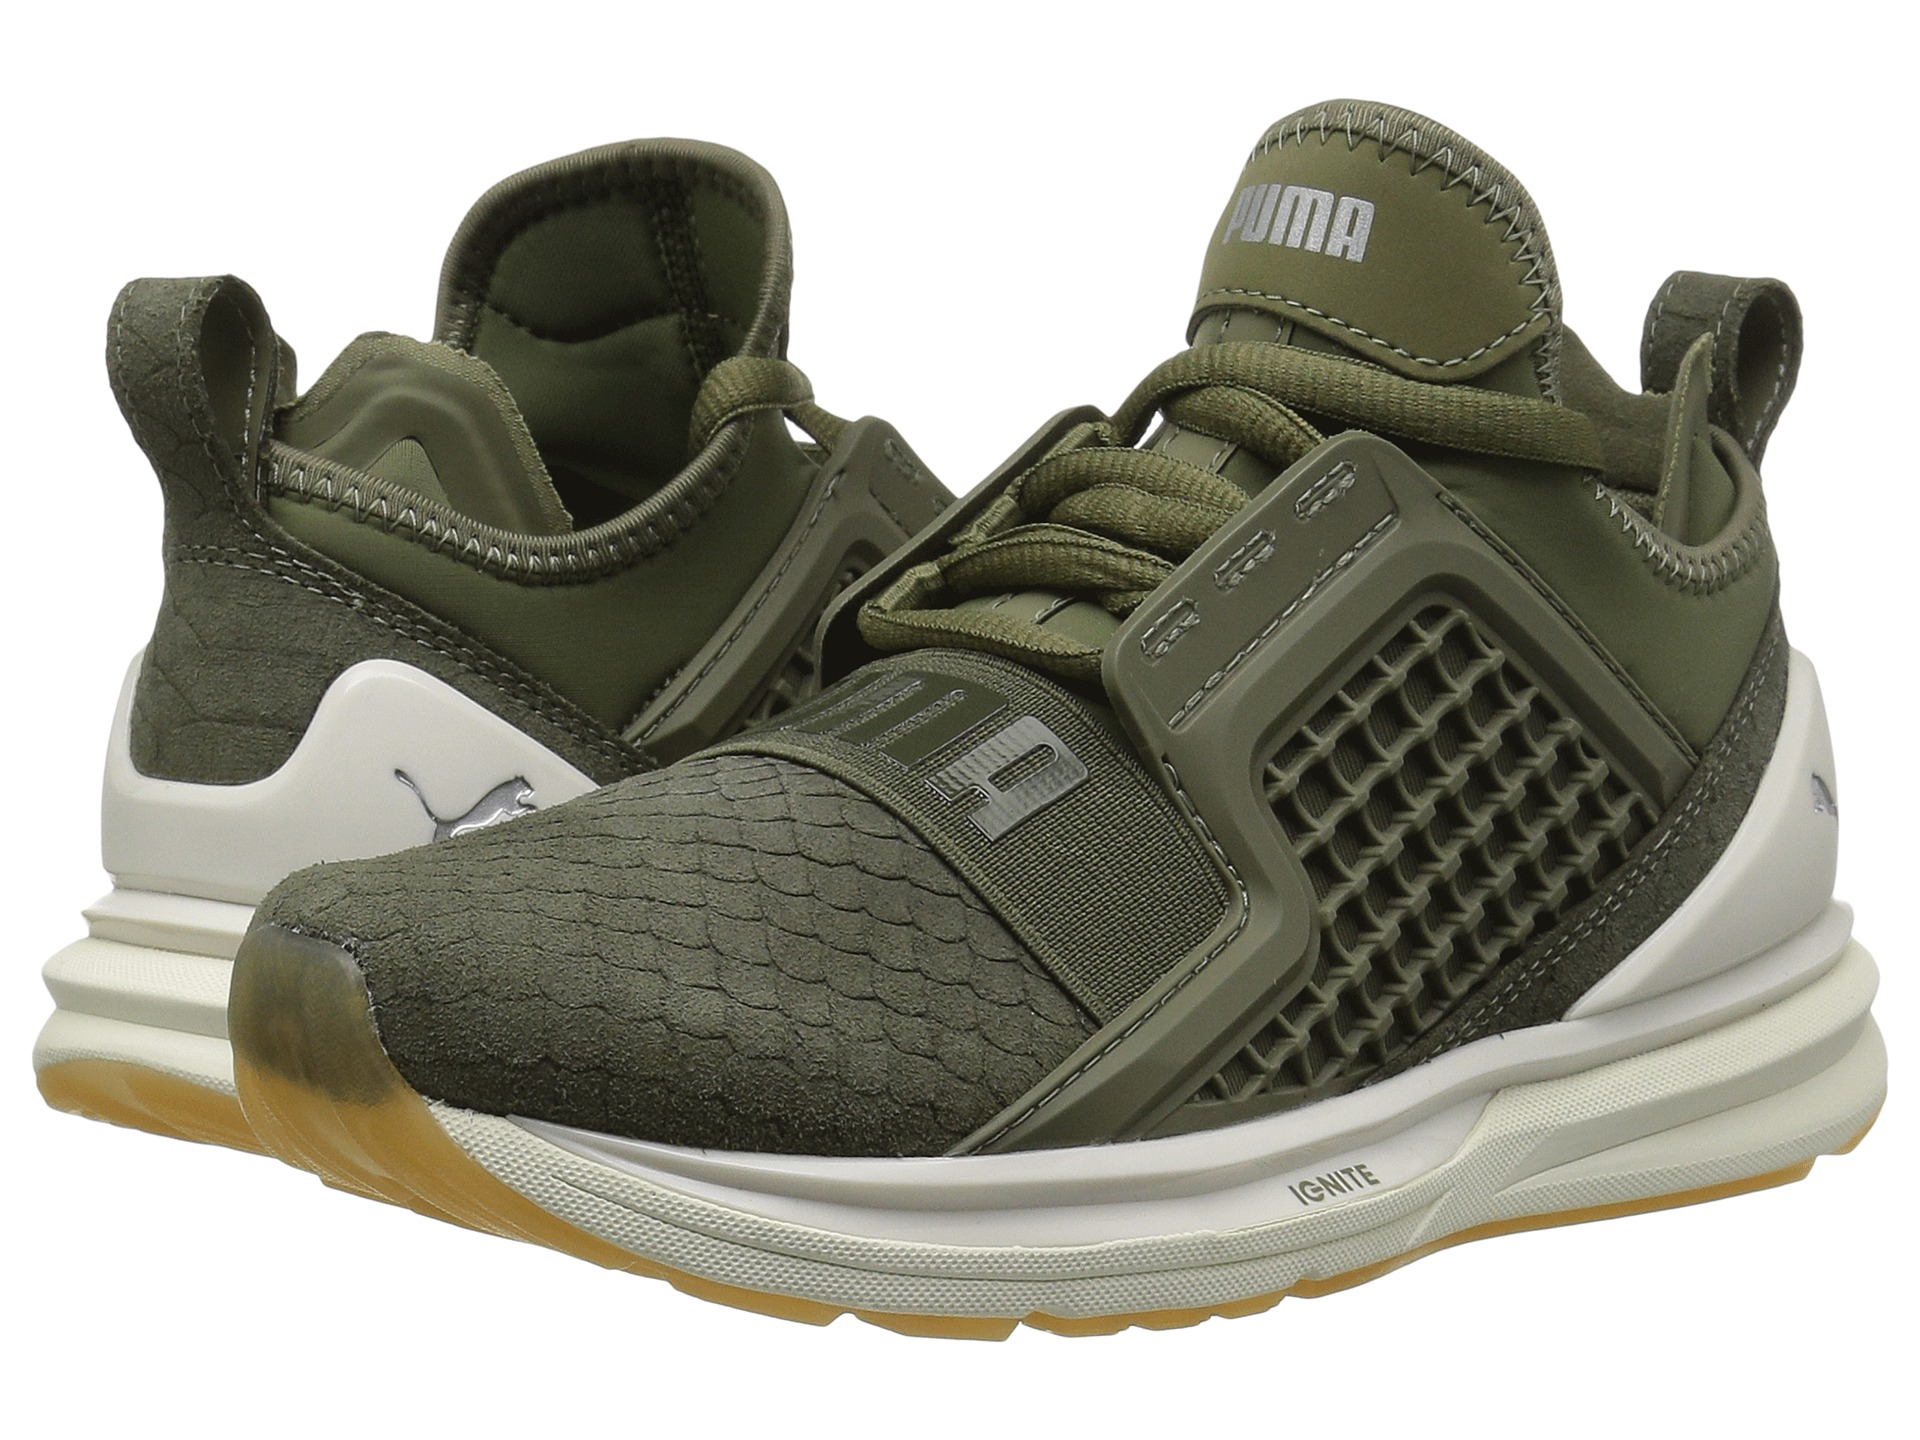 dcb36c7d20a45a well-wreapped PUMA Ignite Limitless Reptile at ...